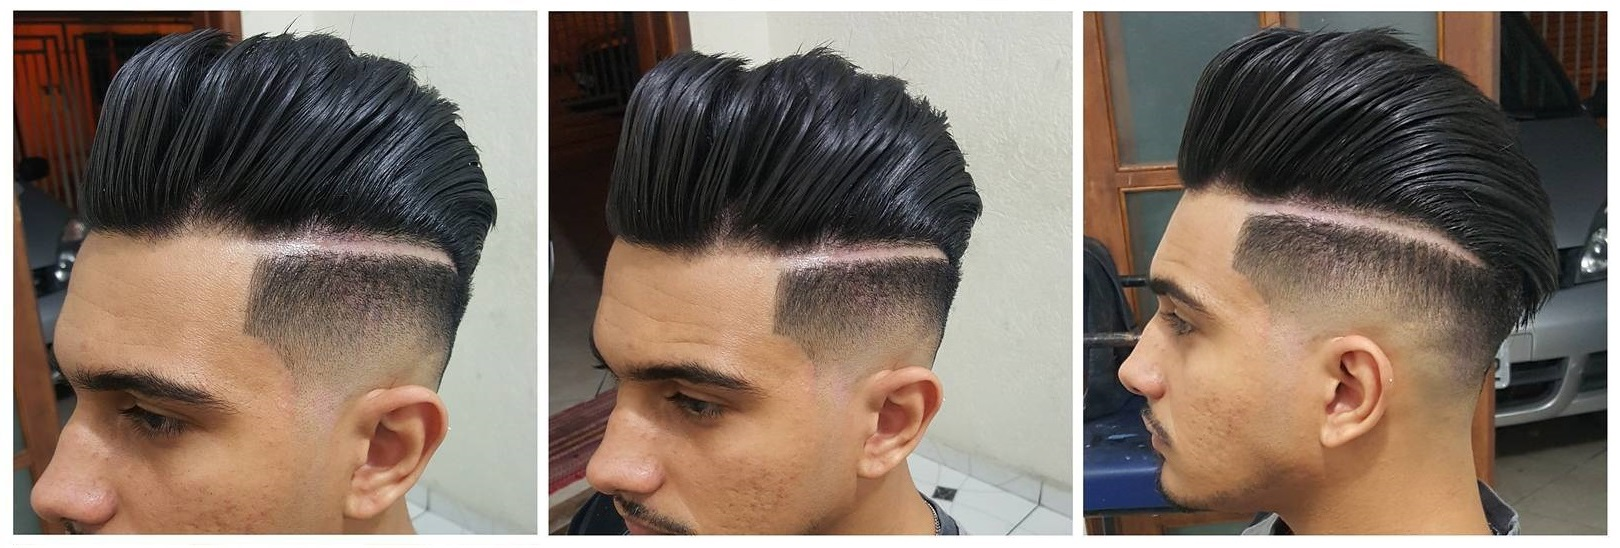 40 Modern Pompadour Hairstyles For Men With Images